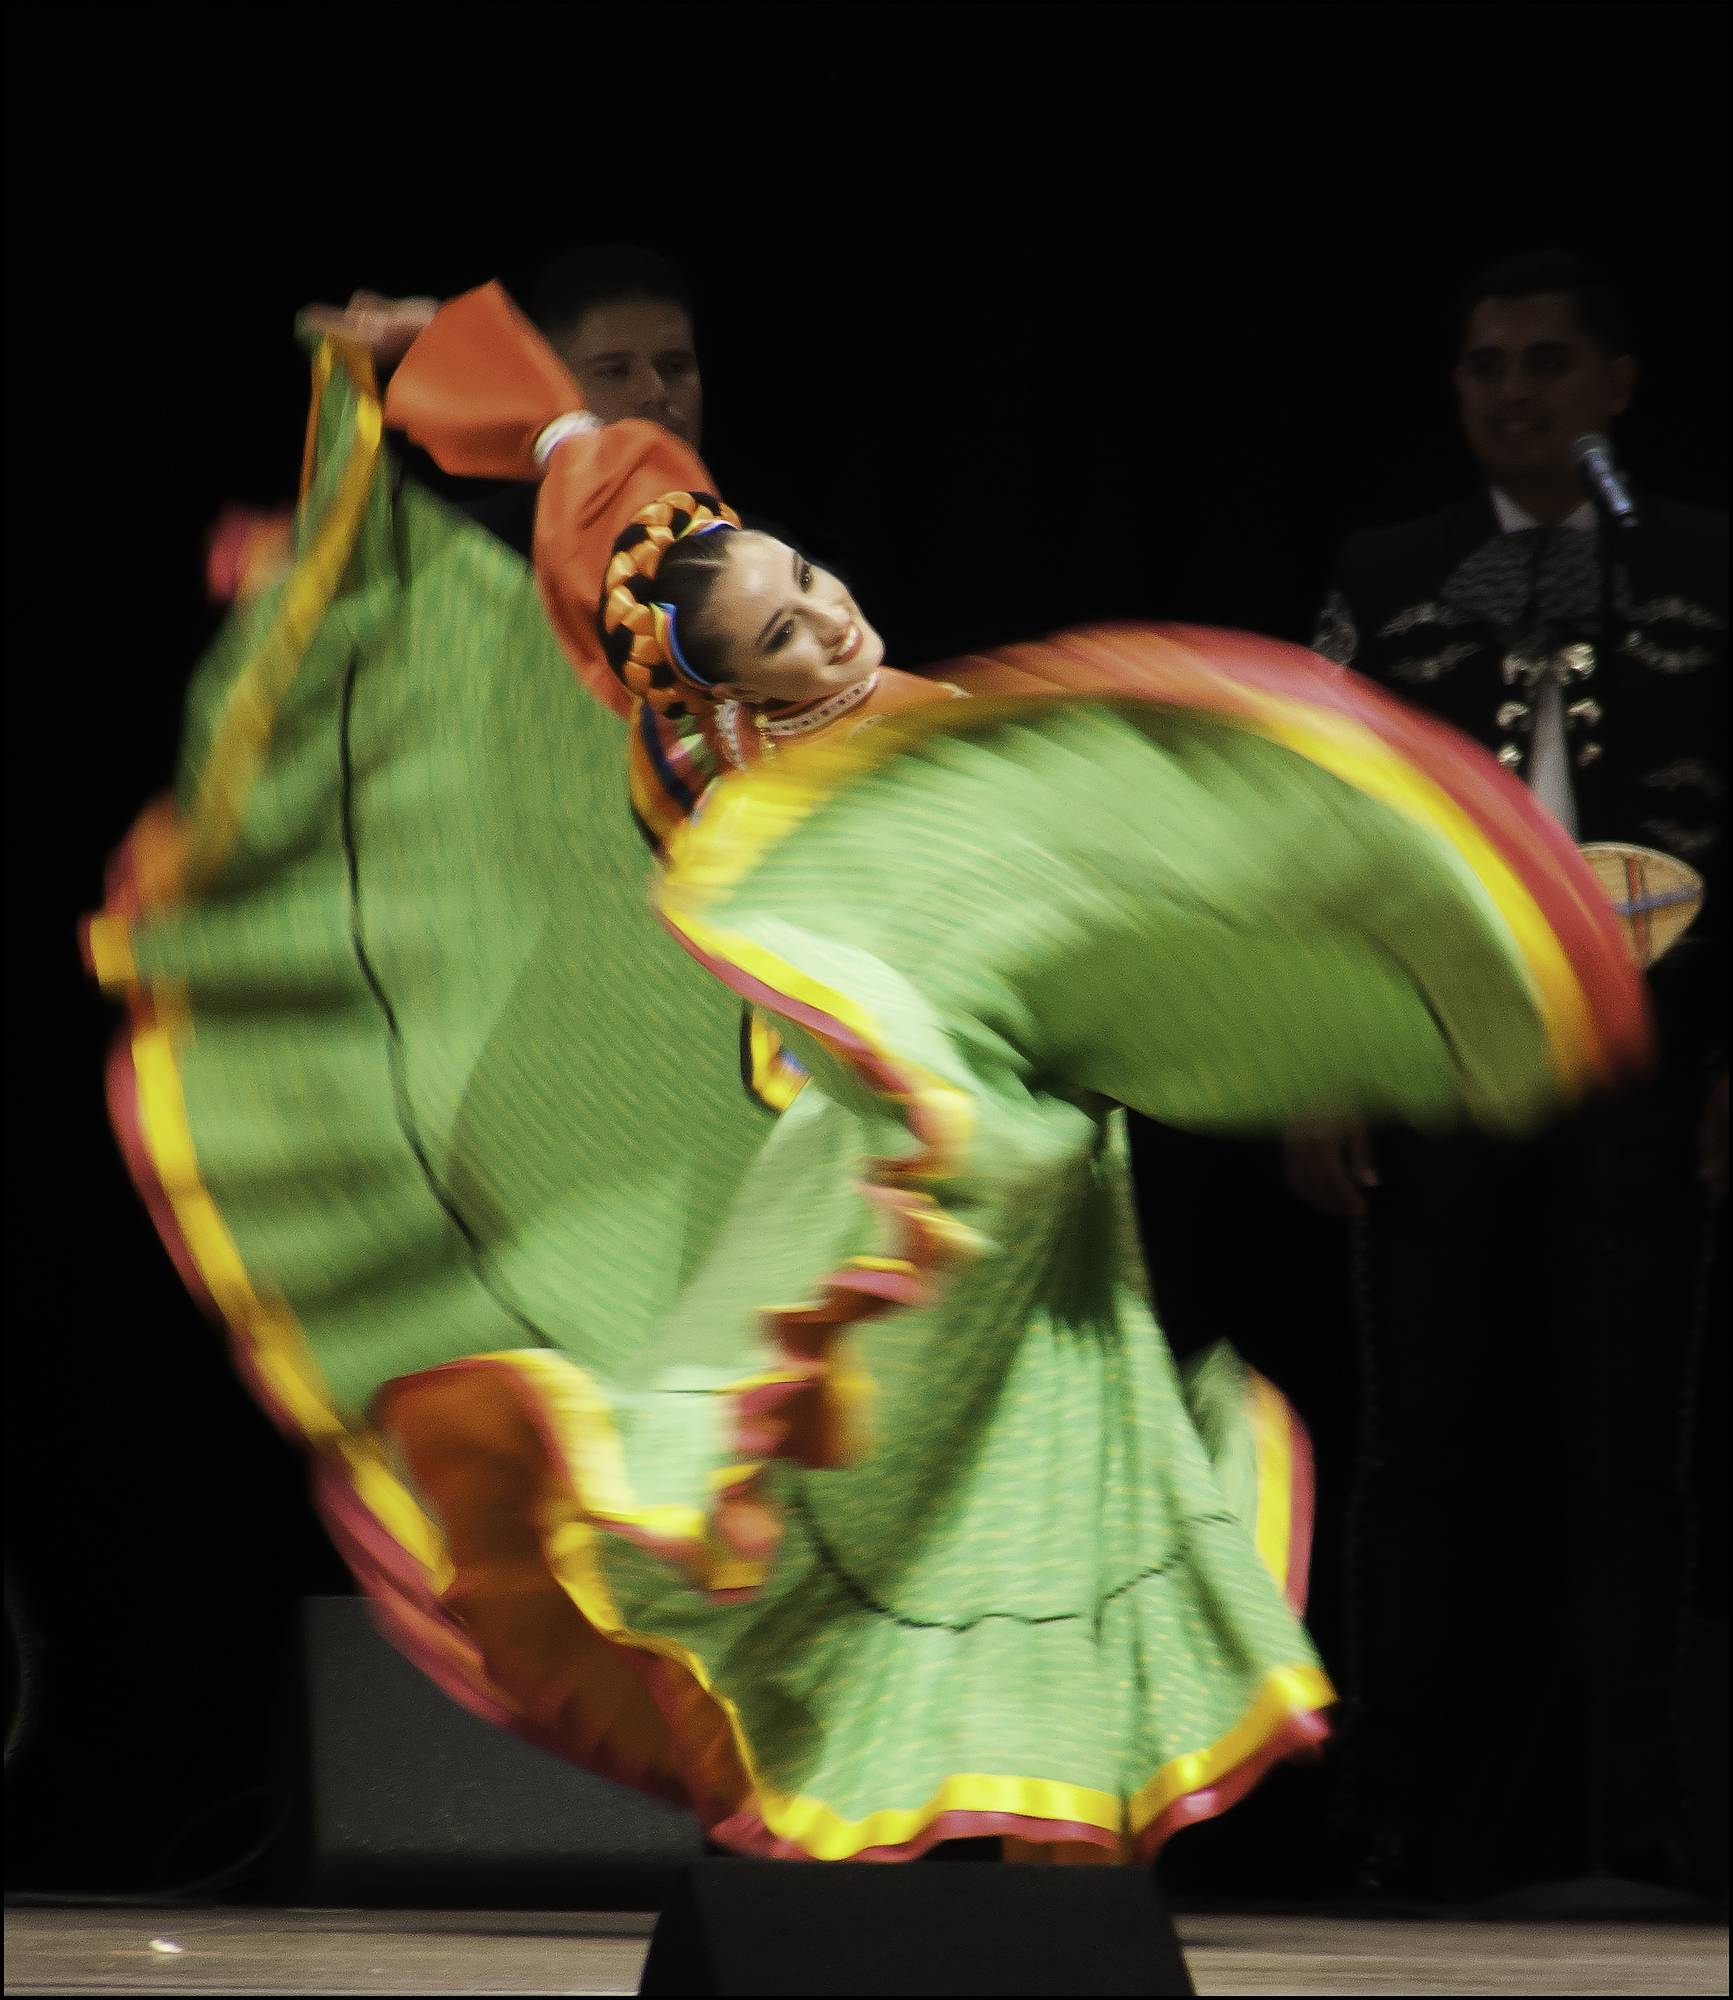 For her photo of a Jalisco dancer performing at Millennium Park, Nina Pulliam of Itasca is the September winner of the Daily Herald's Photo Finish contest.